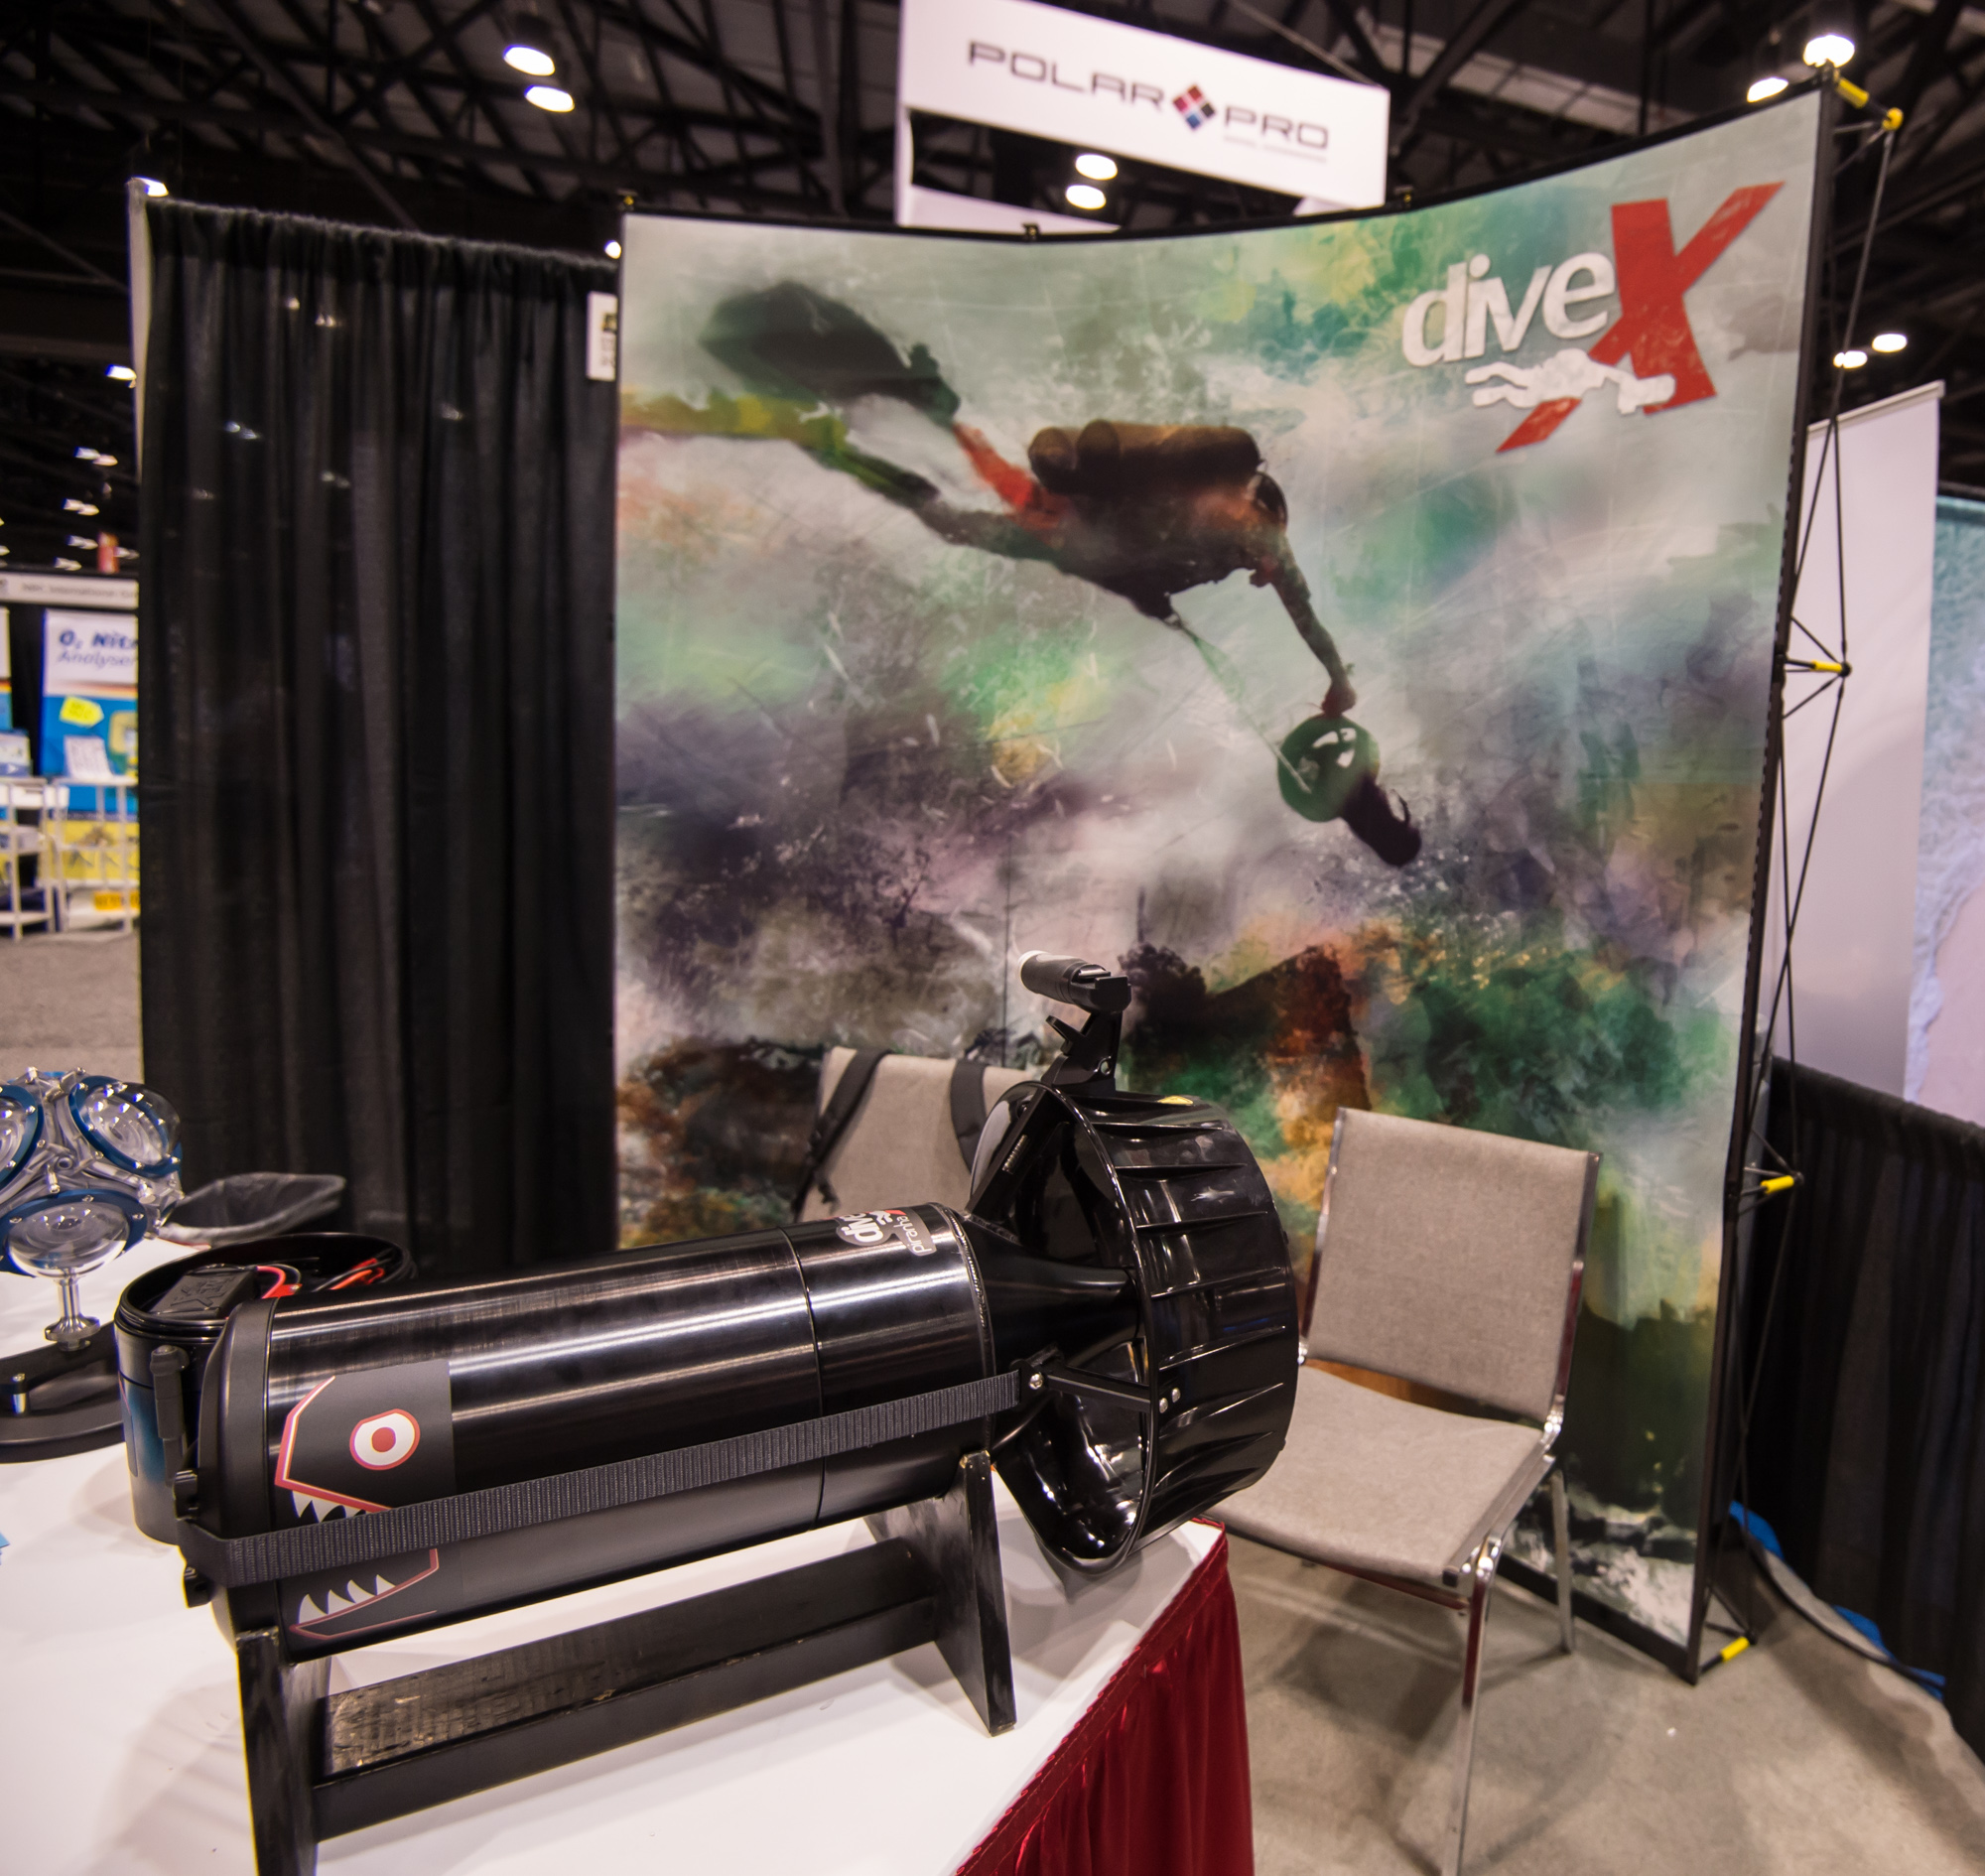 A new version of the Dive Xtras Piranha DPV features a NiMH battery that is TSA approved for air travel, albeit 10 pounds heavier and a bit longer than the lithium version unveiled last year